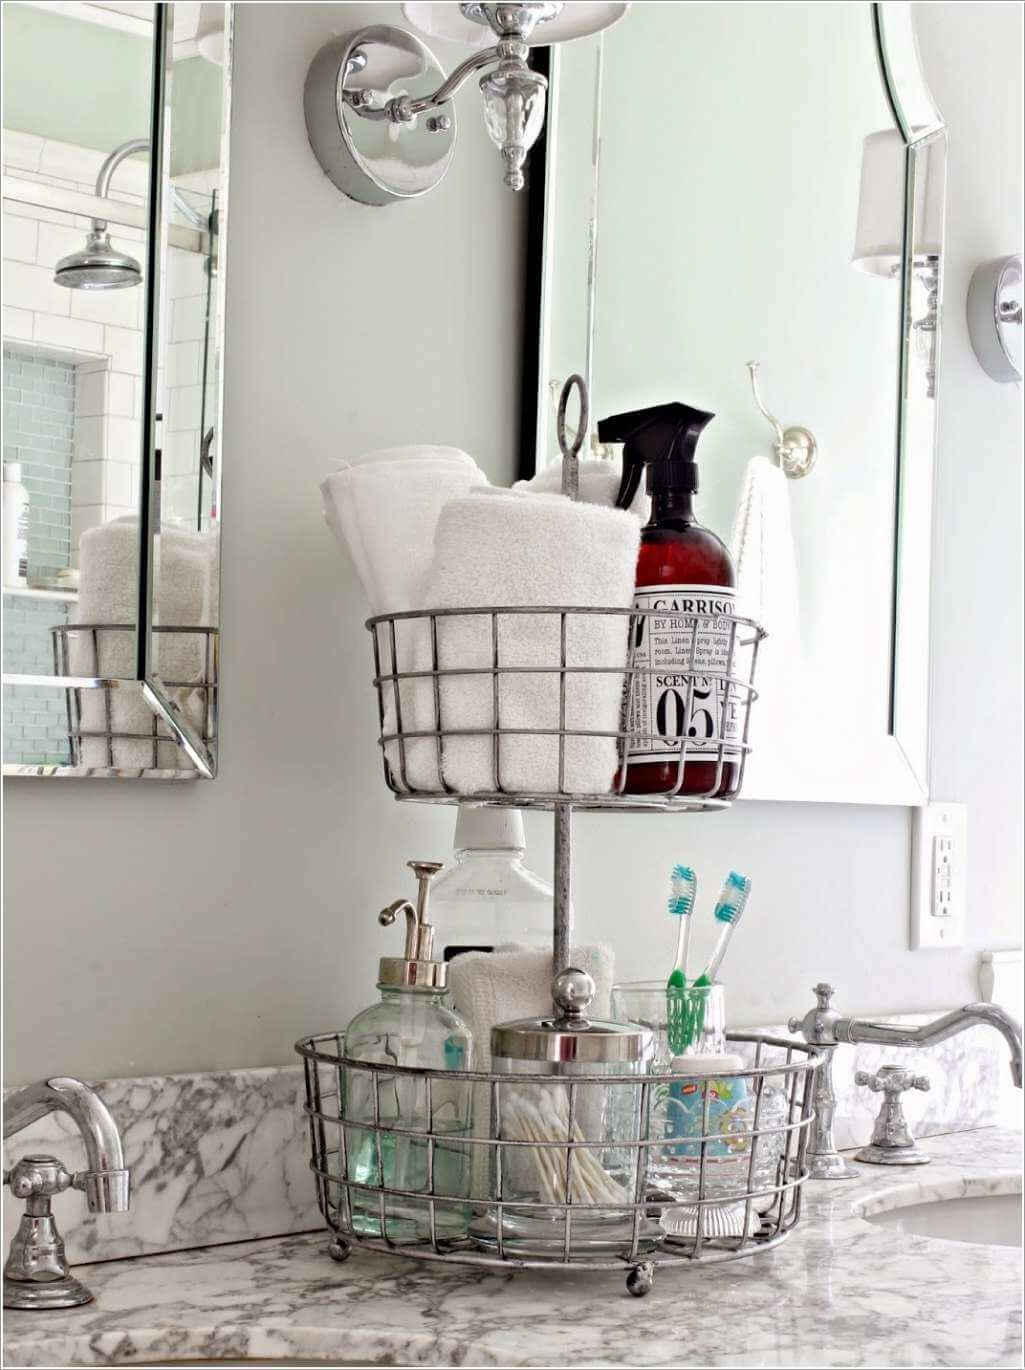 10 Clever Ways to Store More In Your Bathroom 6